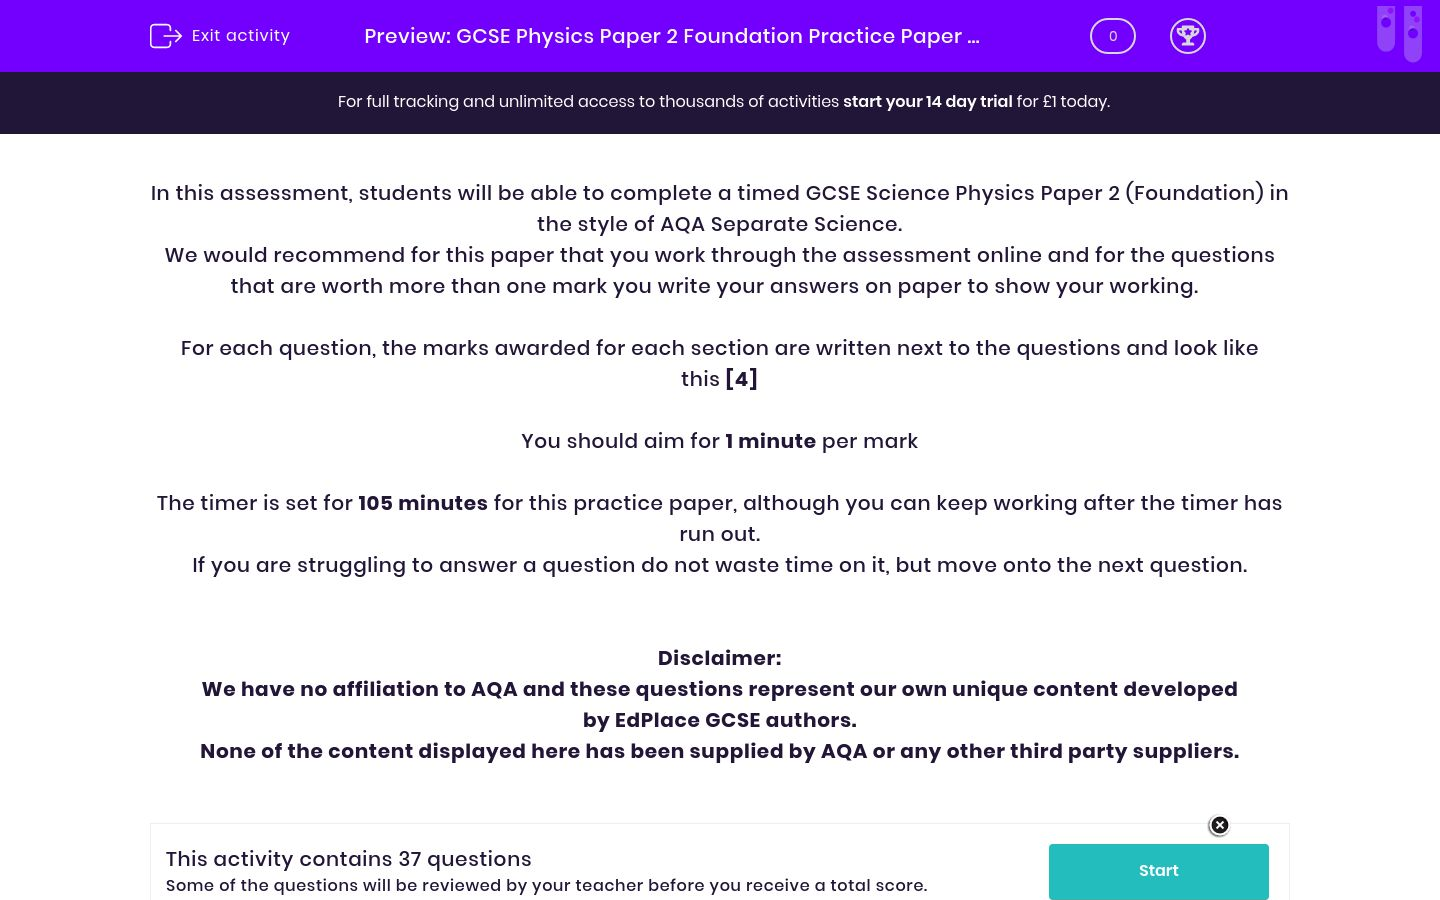 'GCSE Physics Paper 2 Foundation Practice Paper in the Style of AQA Separate Science' worksheet